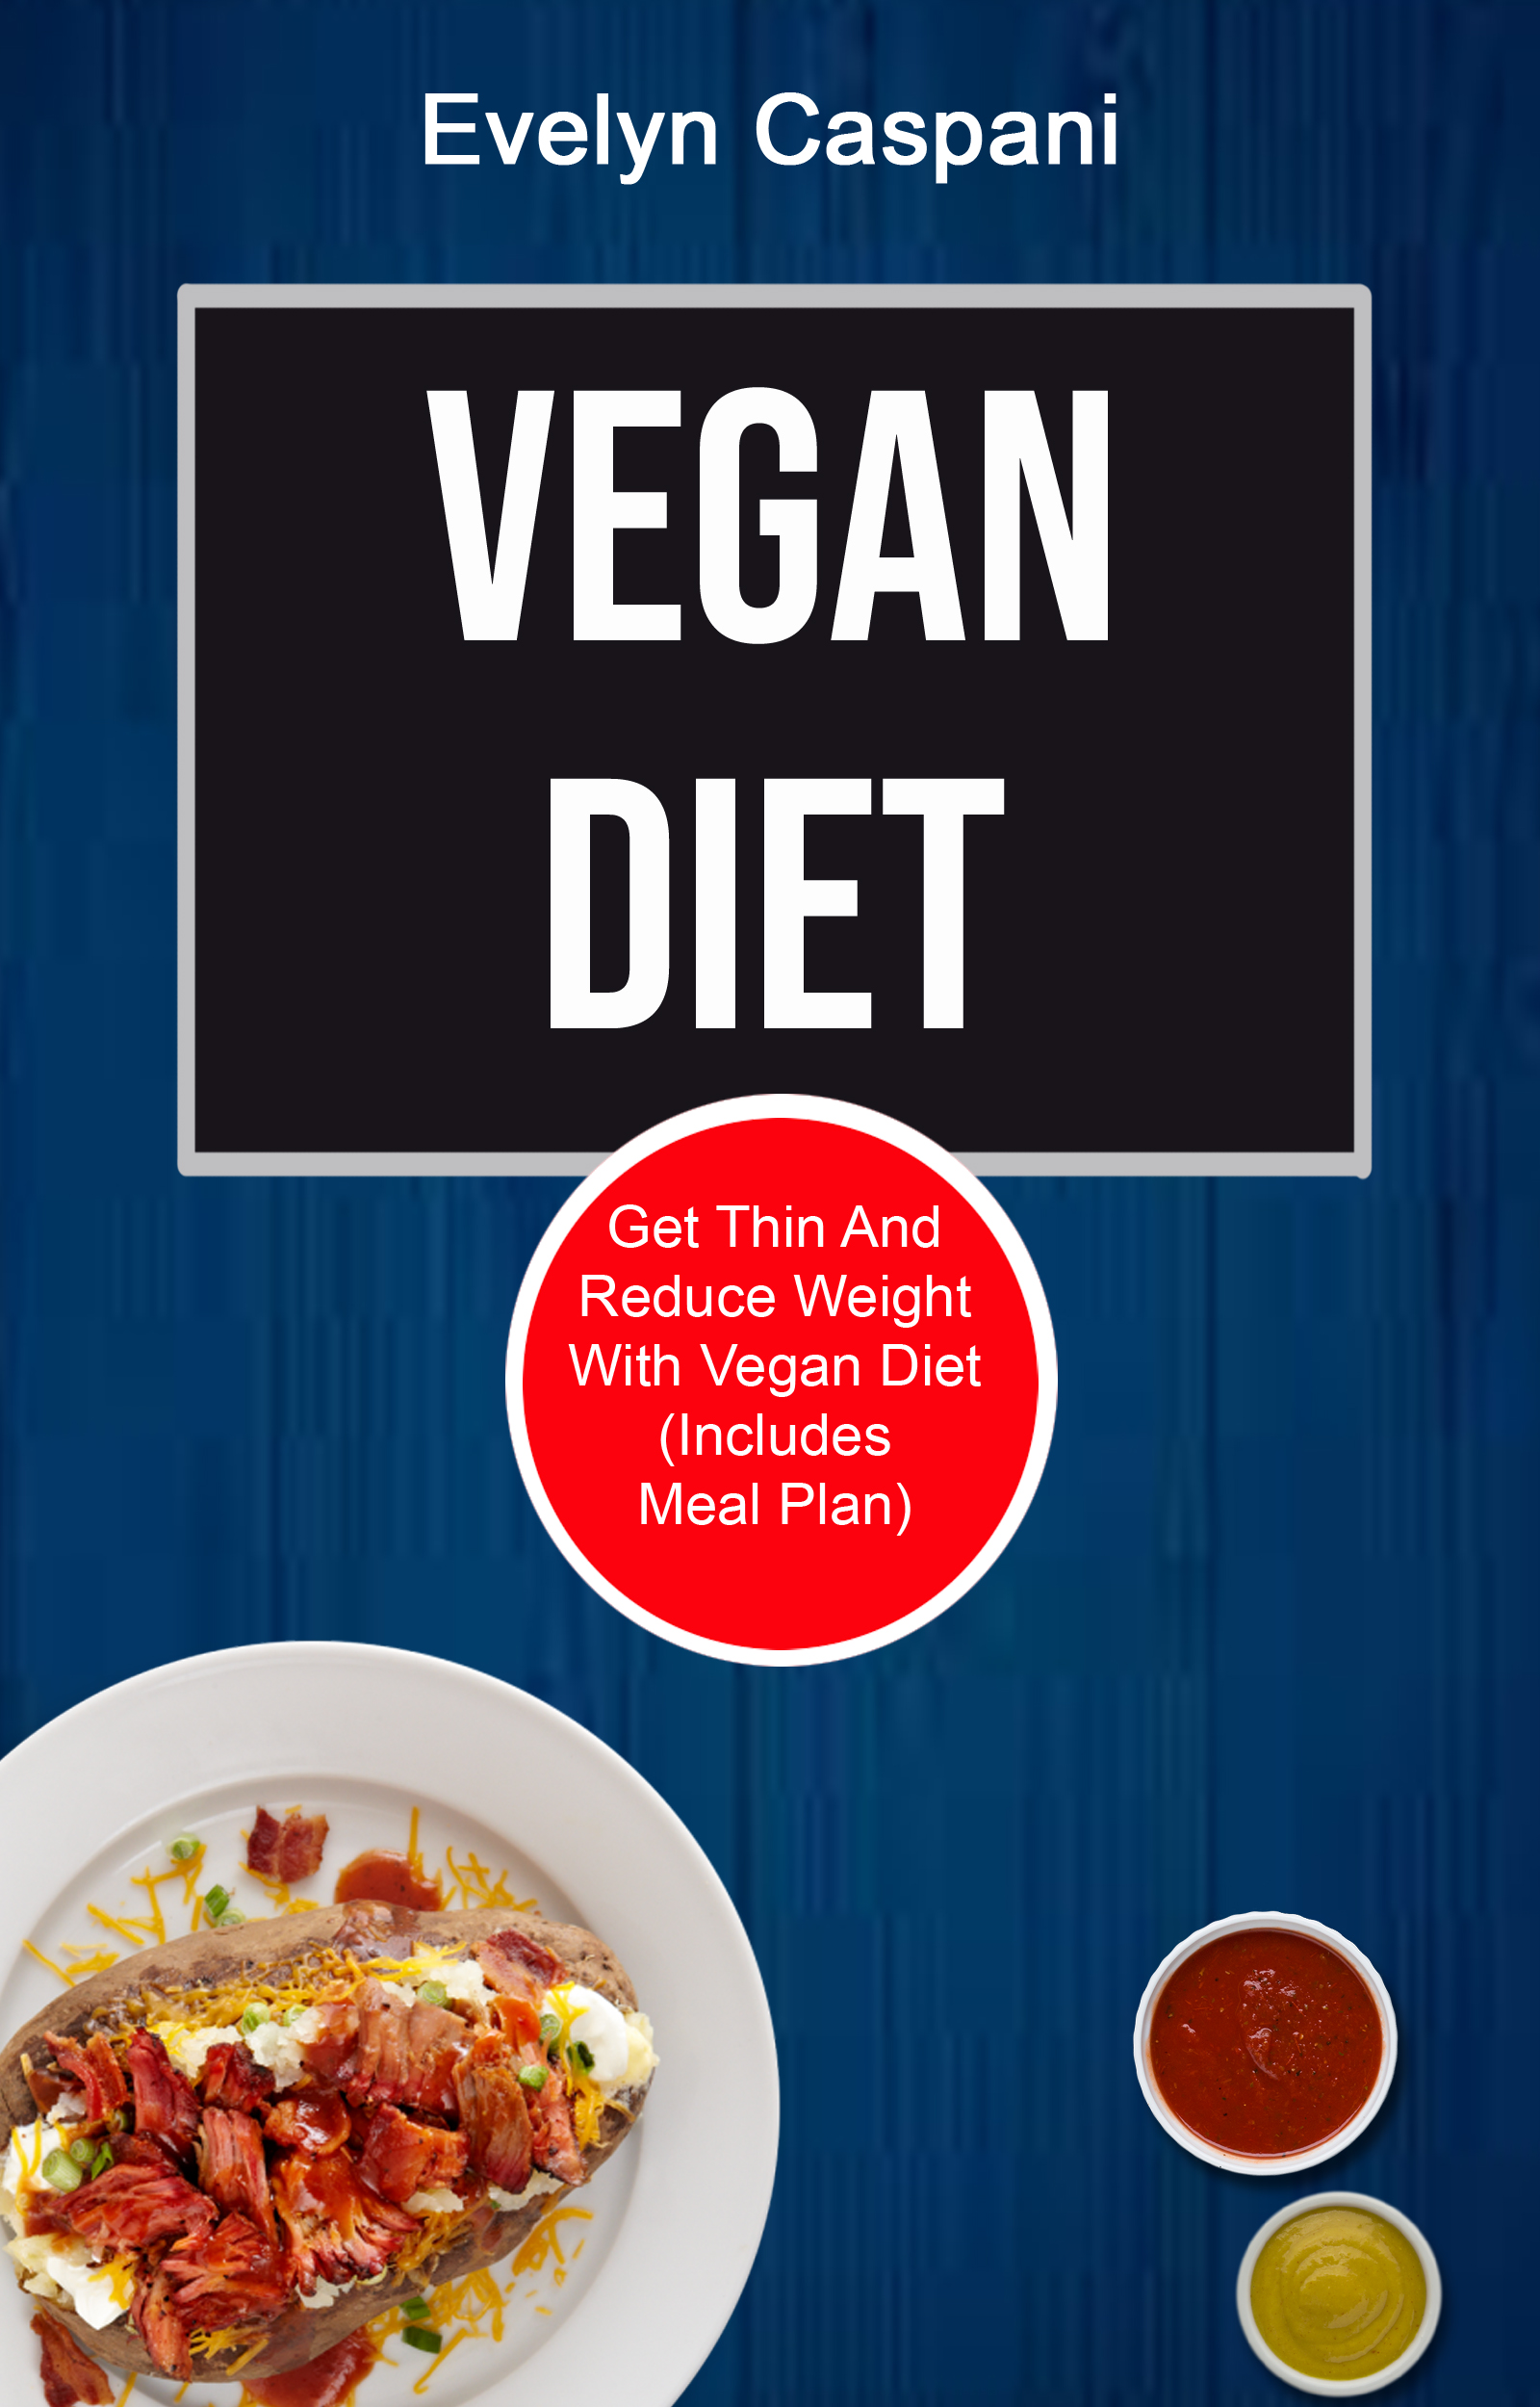 Vegan diet: get thin and reduce weight with vegan diet (includes meal plan)